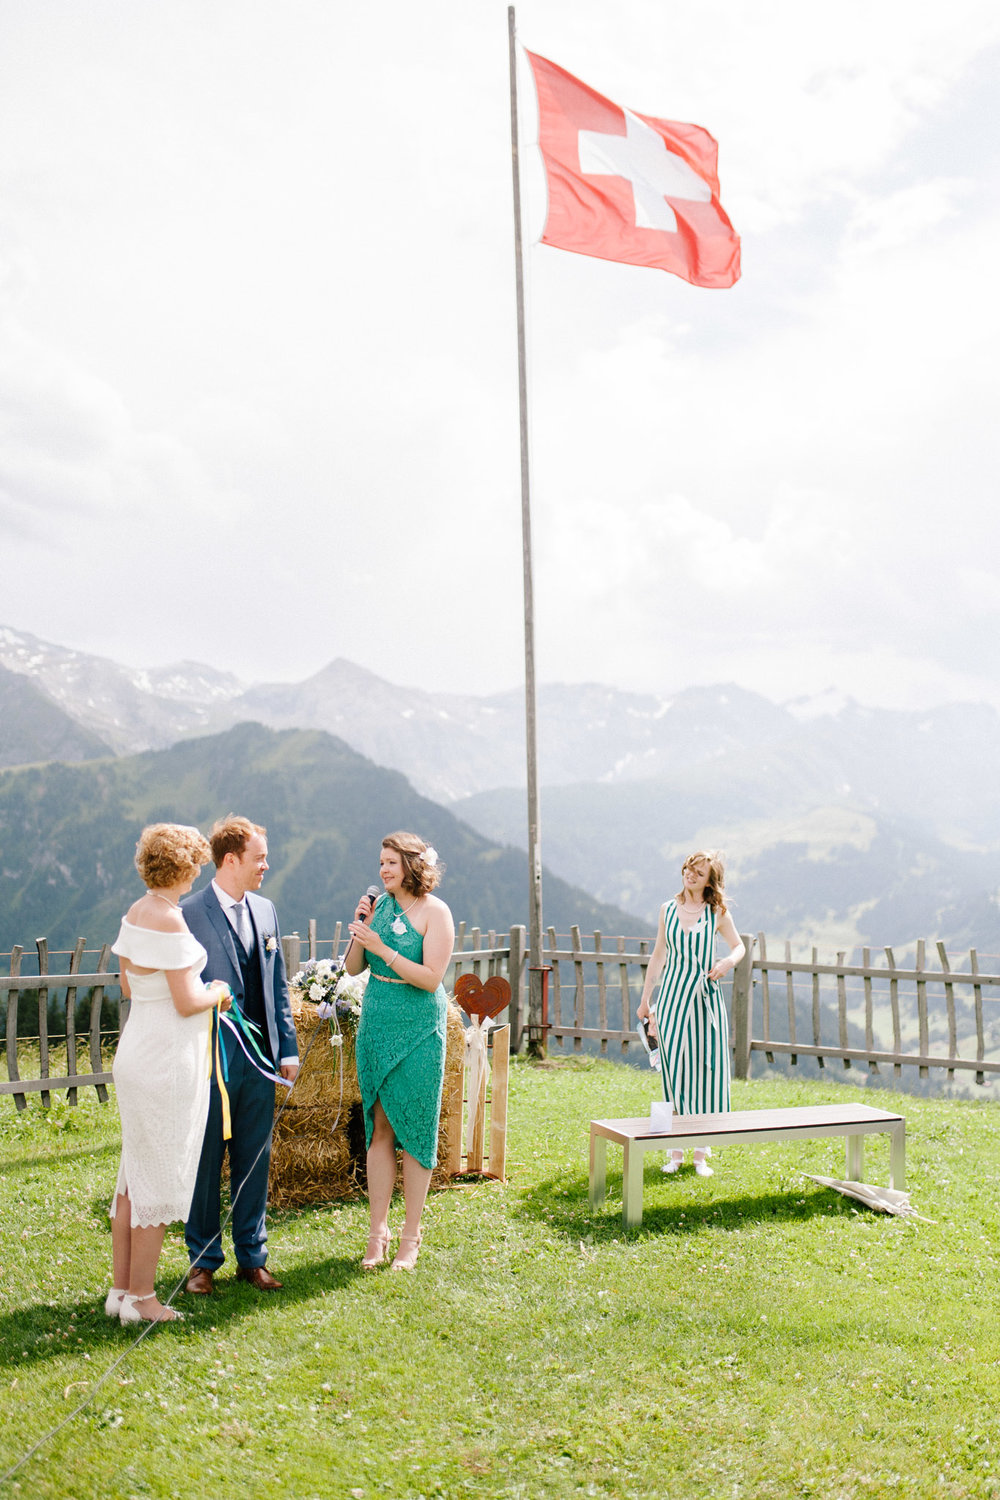 Lenl-Simmental-Buehlerhof-Pia-Anna-Christian-Wedding-Photography-EK-83.jpg